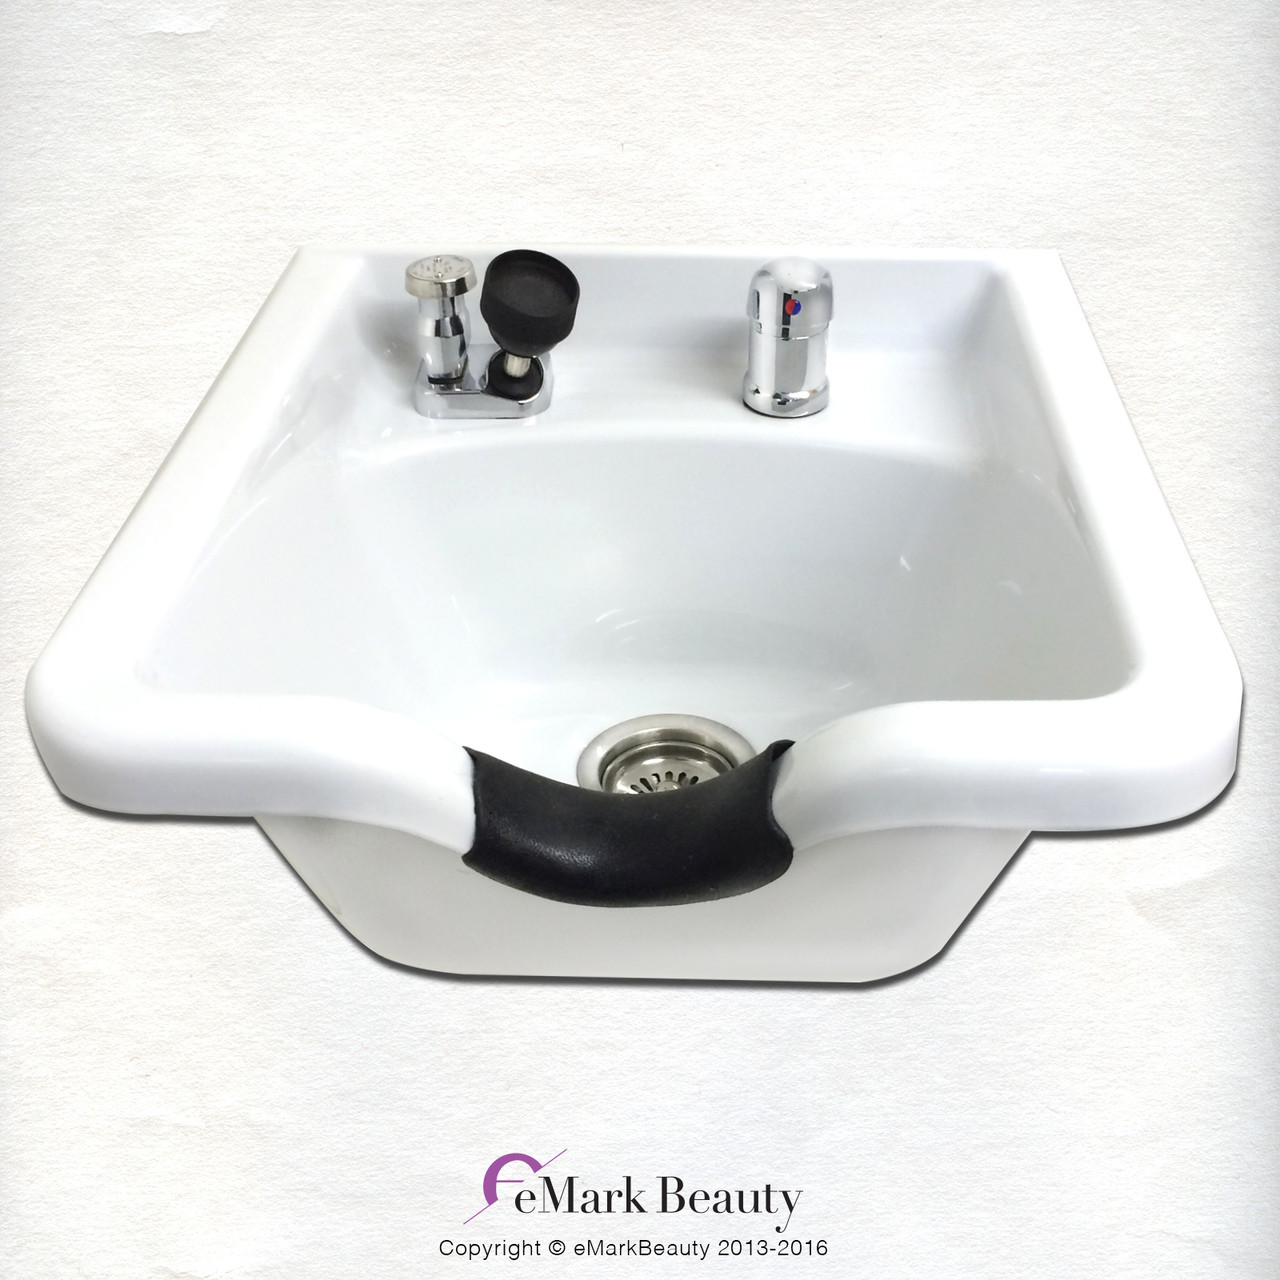 BACK IN STOCK ON 9/30: Square White ABS Plastic Shampoo Bowl TLC-W11 KSGT